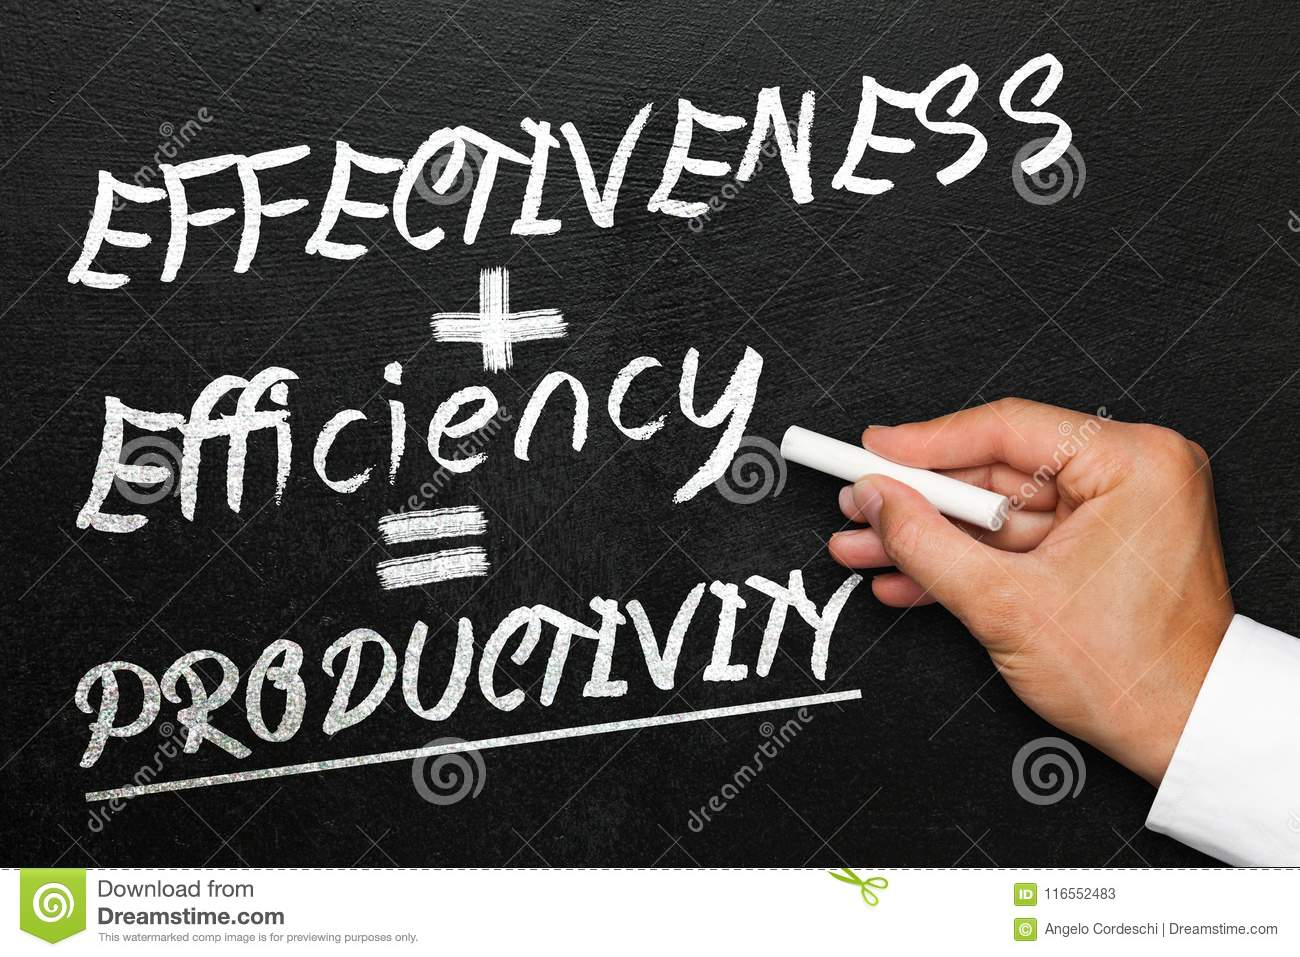 About Productivity blackboard with text effectiveness, efficiency and